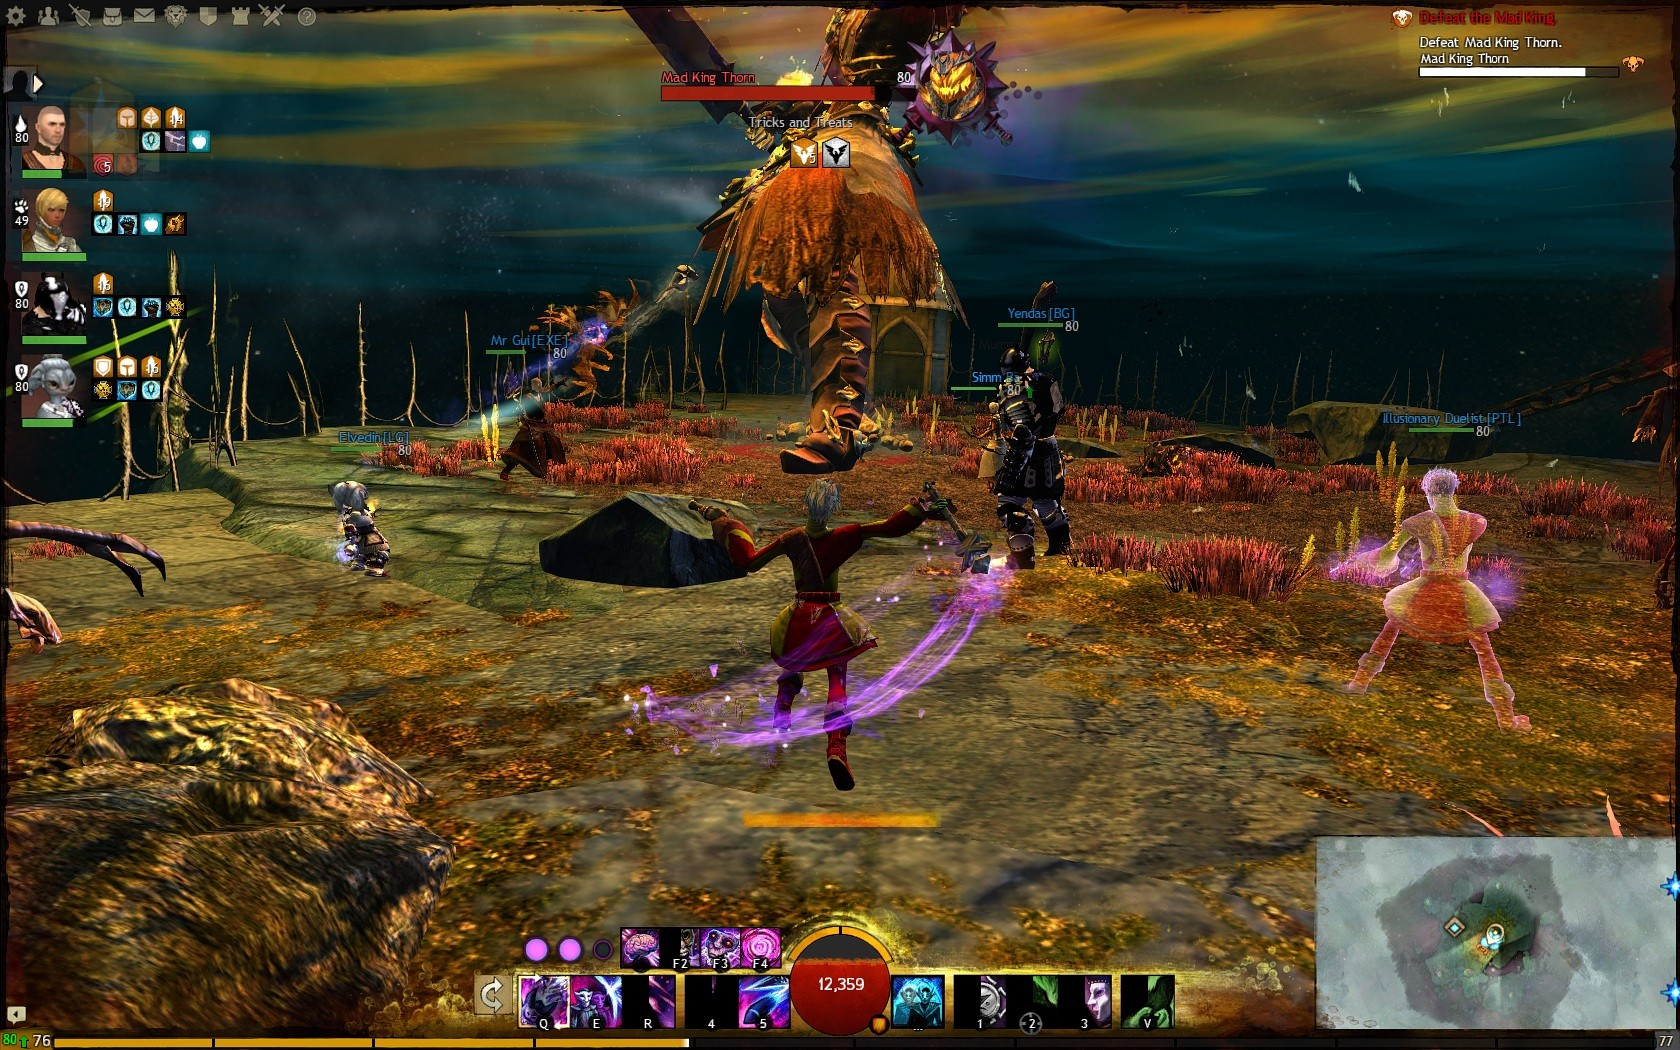 Guild Wars 2 - Awesome boss fight!